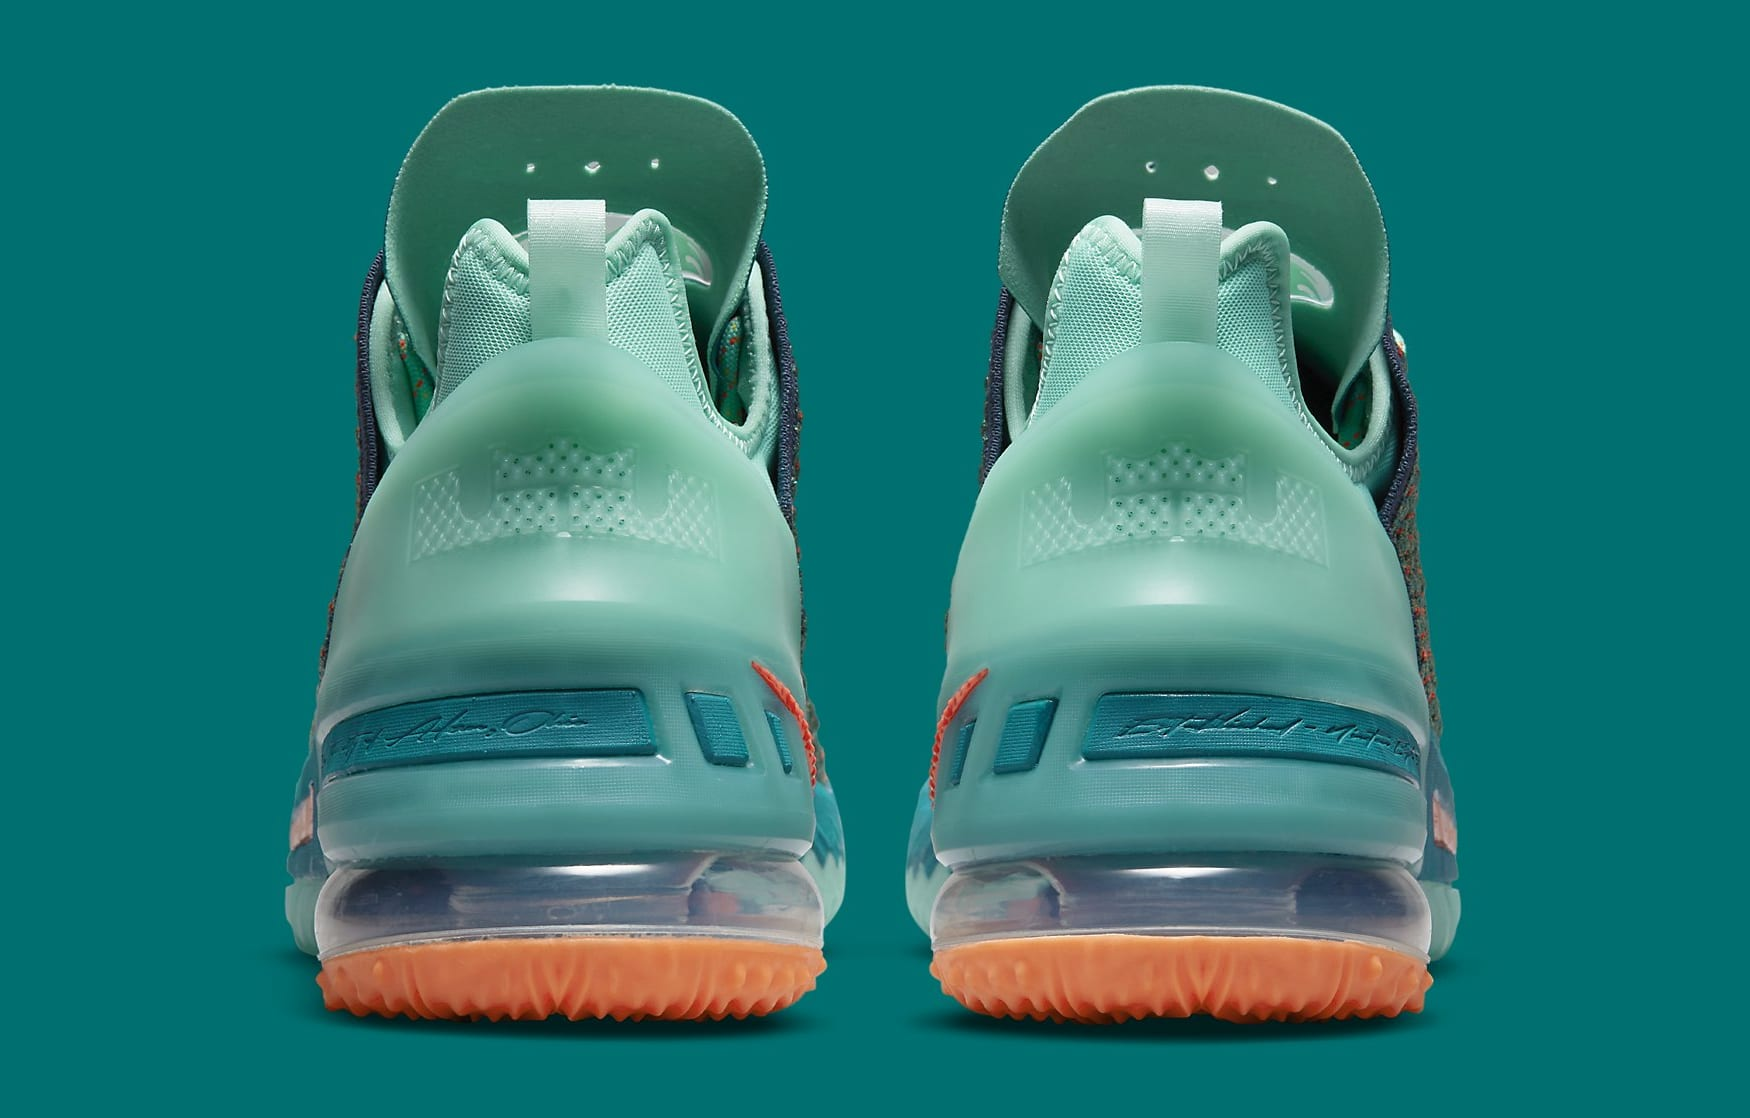 Nike LeBron 18 We Are Family Release Date CQ9283-300 Heel